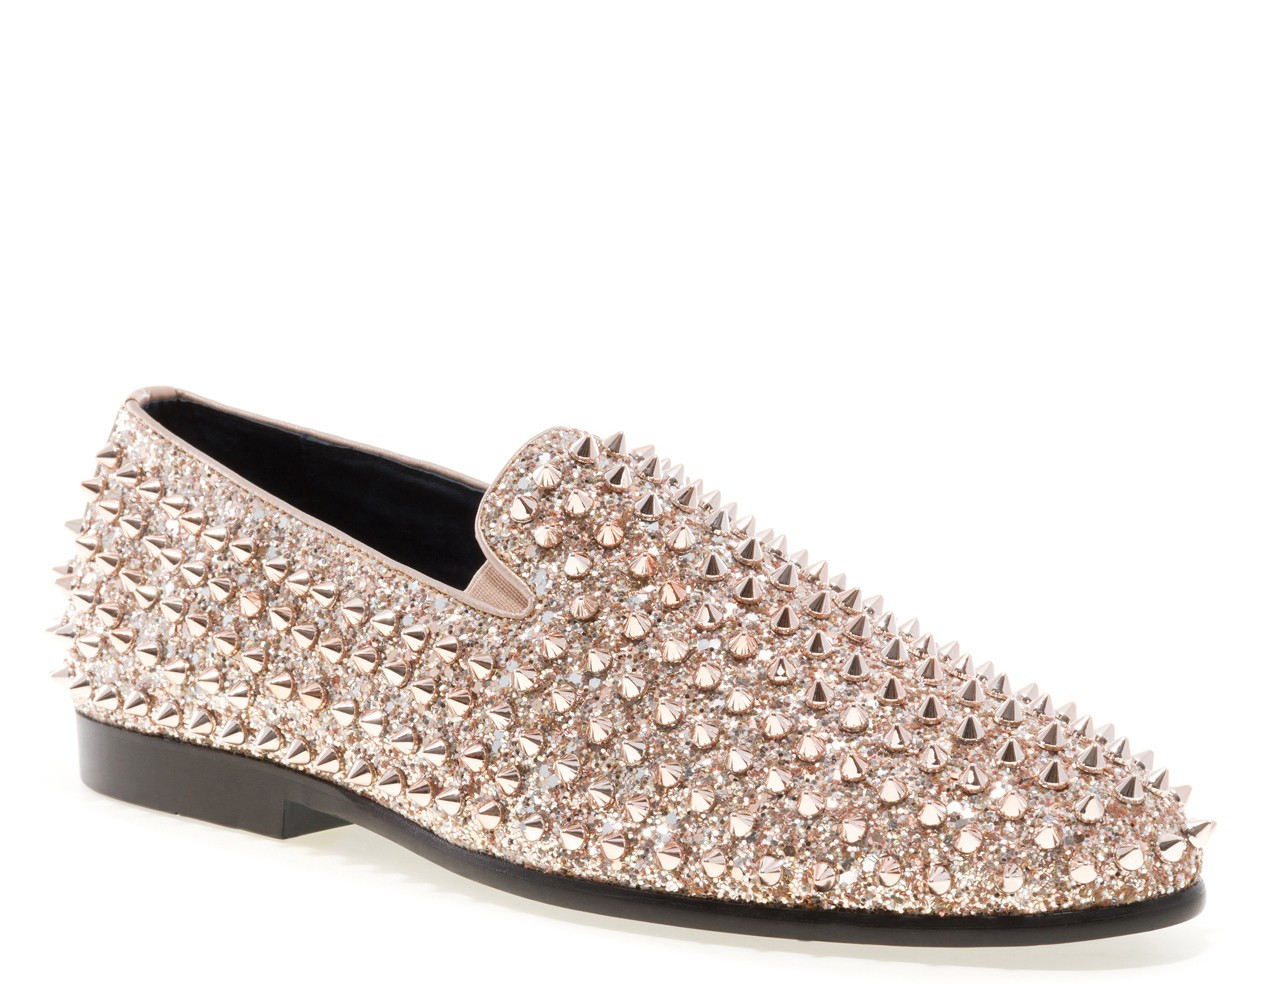 Luxor Rose Gold Studs Slip On Loafer Luxor Rose Wedding Shoes Party Shoes Prom Shoes